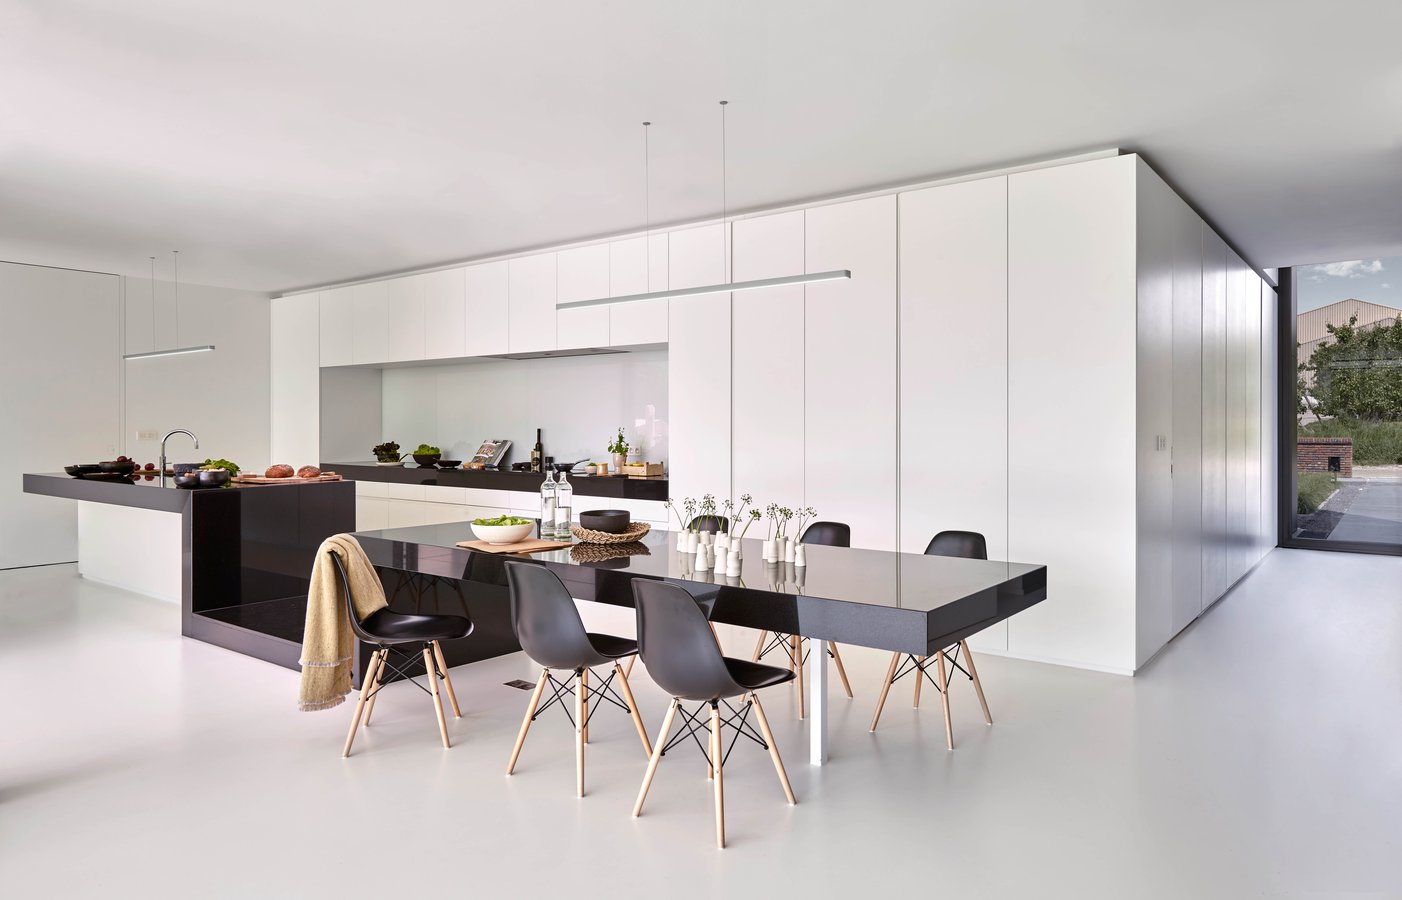 Super Line By Flos Architectural Ecc Wiring House Lights Nz Comprised Of A Rail Combining Direct And Indirect Light Secured Two Invisible Coaxial Cables Serving Both As Anchorage Electrical